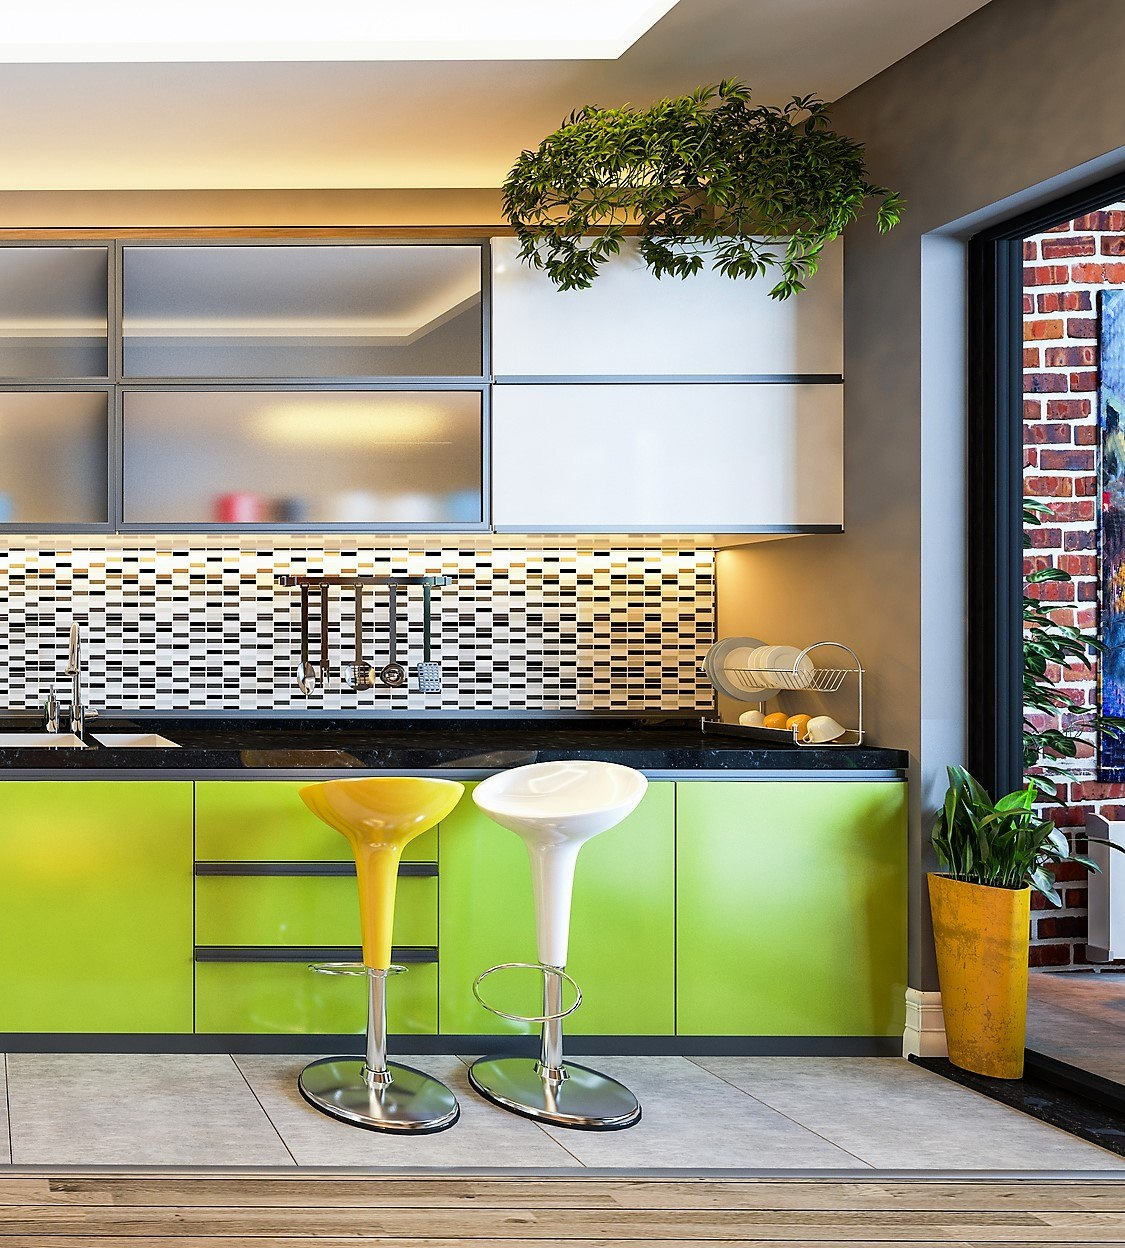 Kitchen Decorating Trends: Kitchen Decorating Trends That Are Quickly Going Out Of